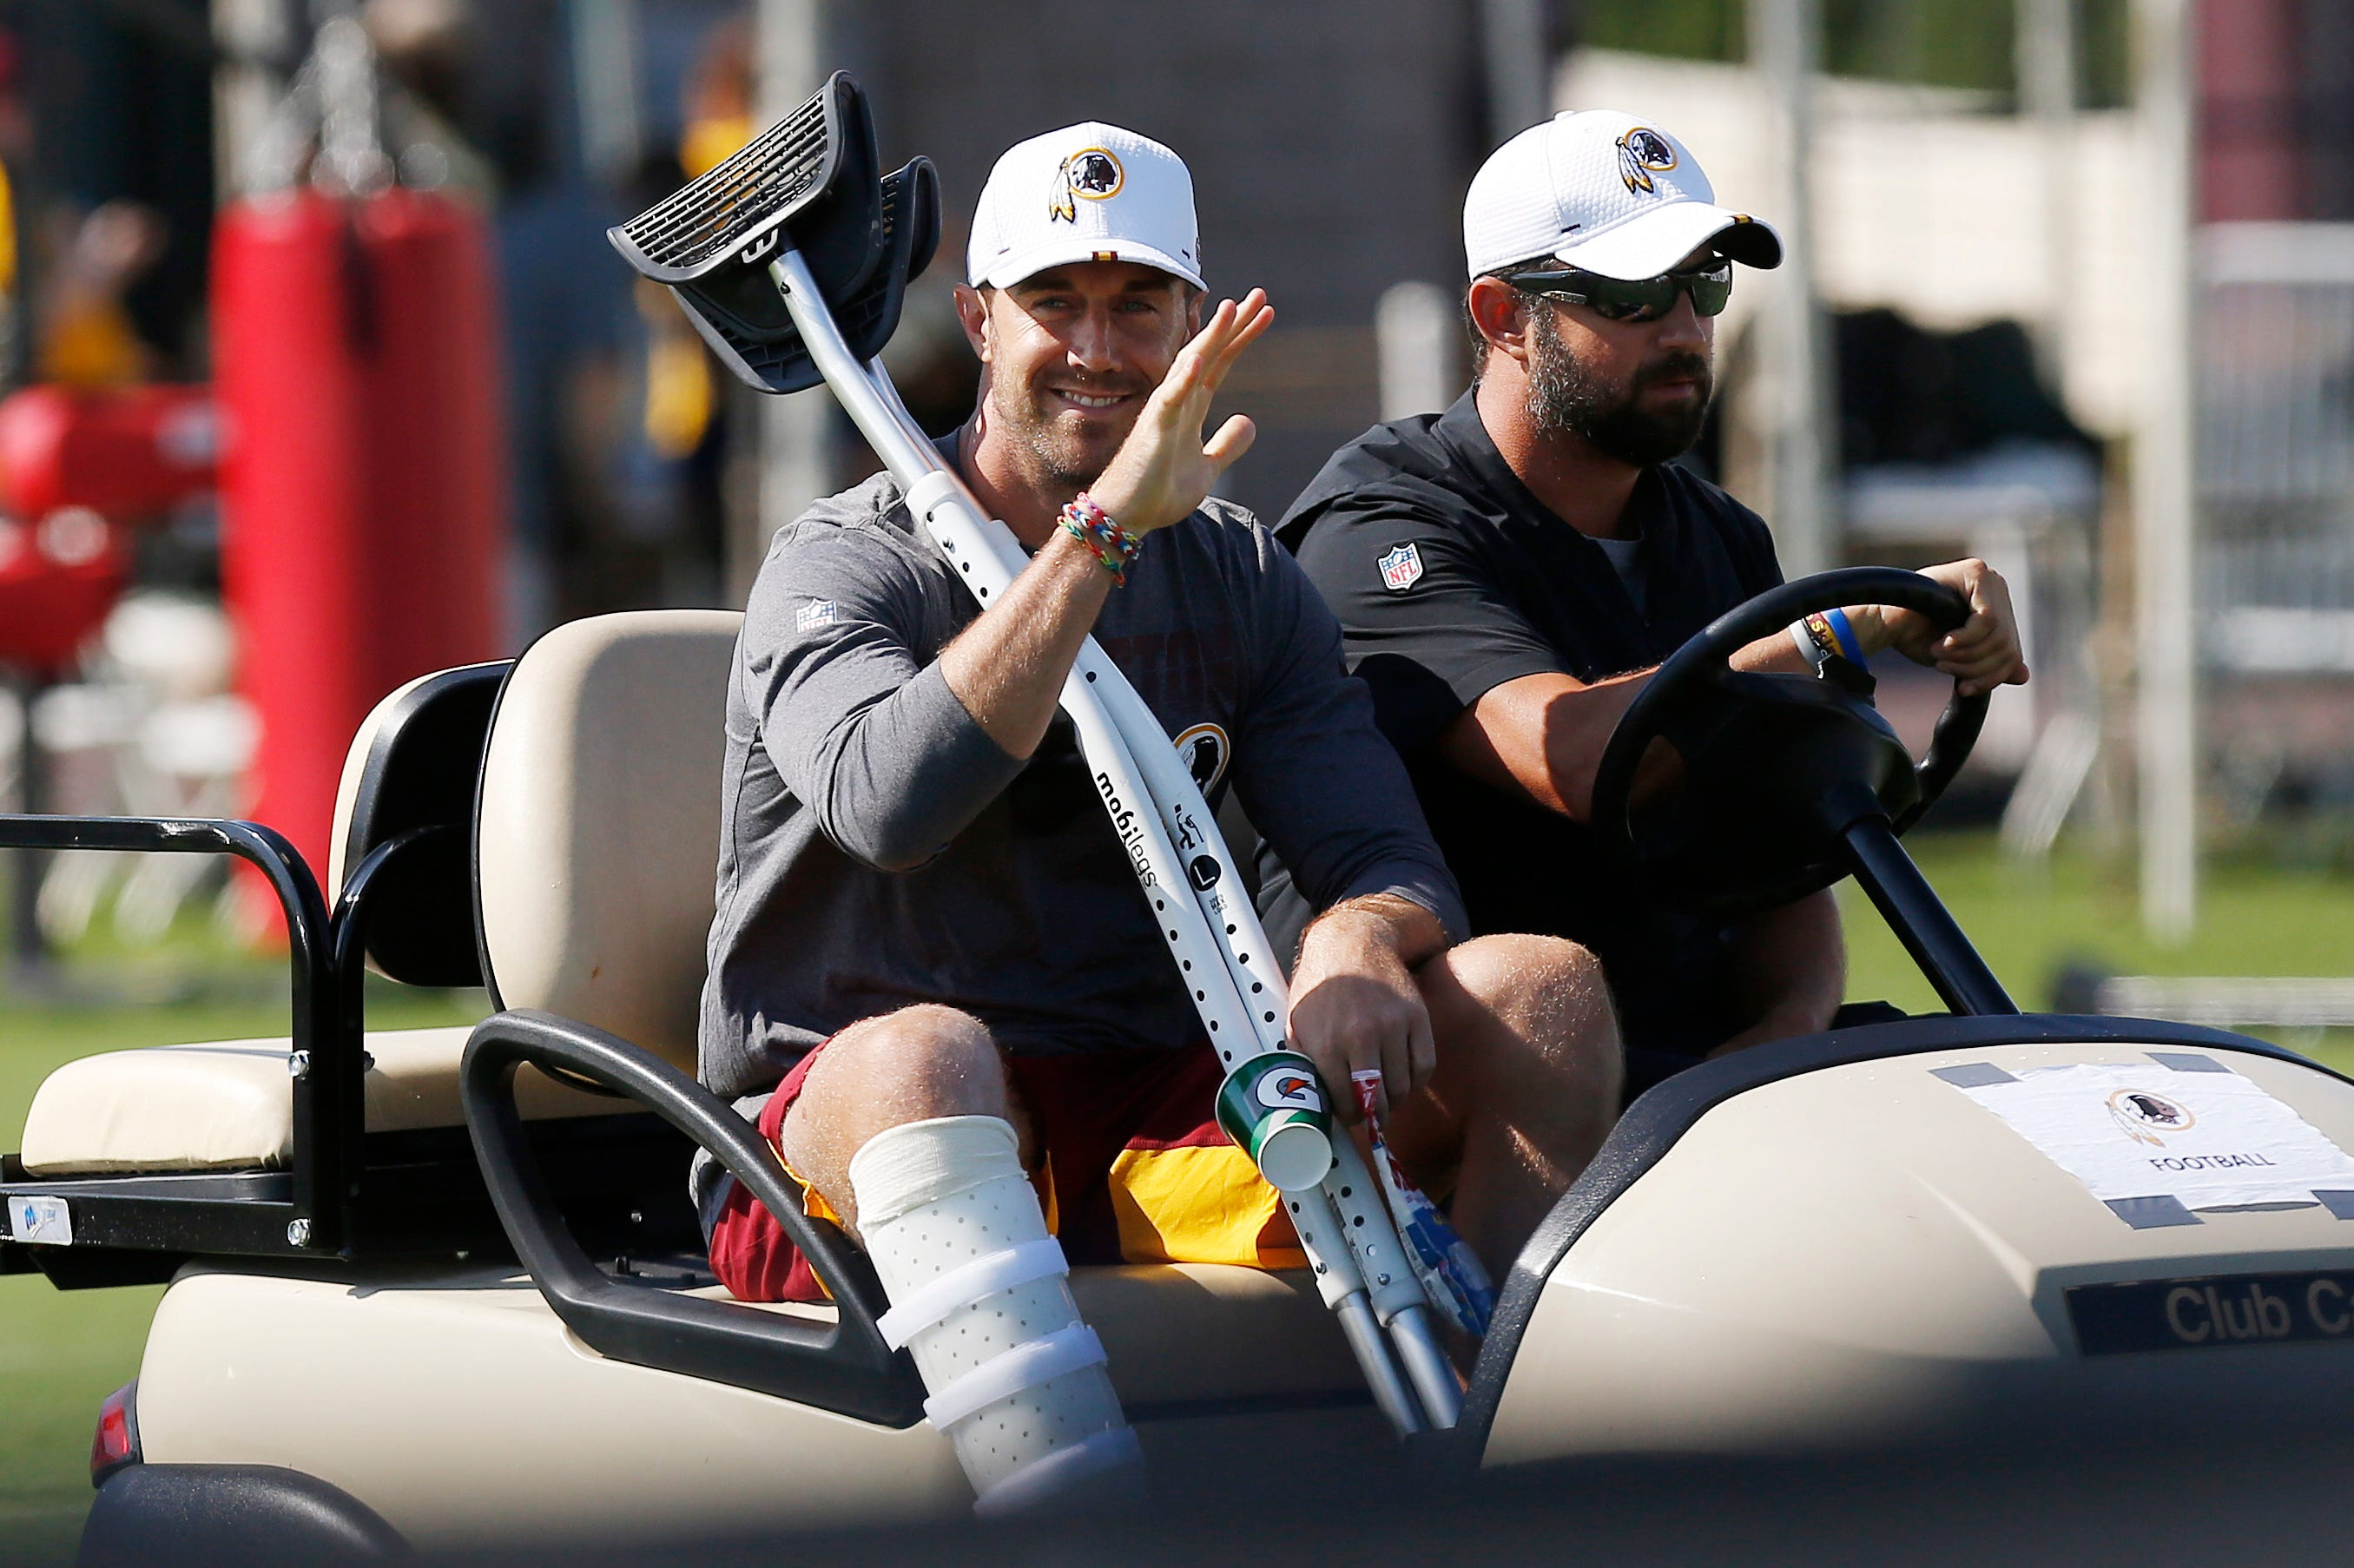 Alex Smith s road to recovery included stay at facility helping wounded military veterans